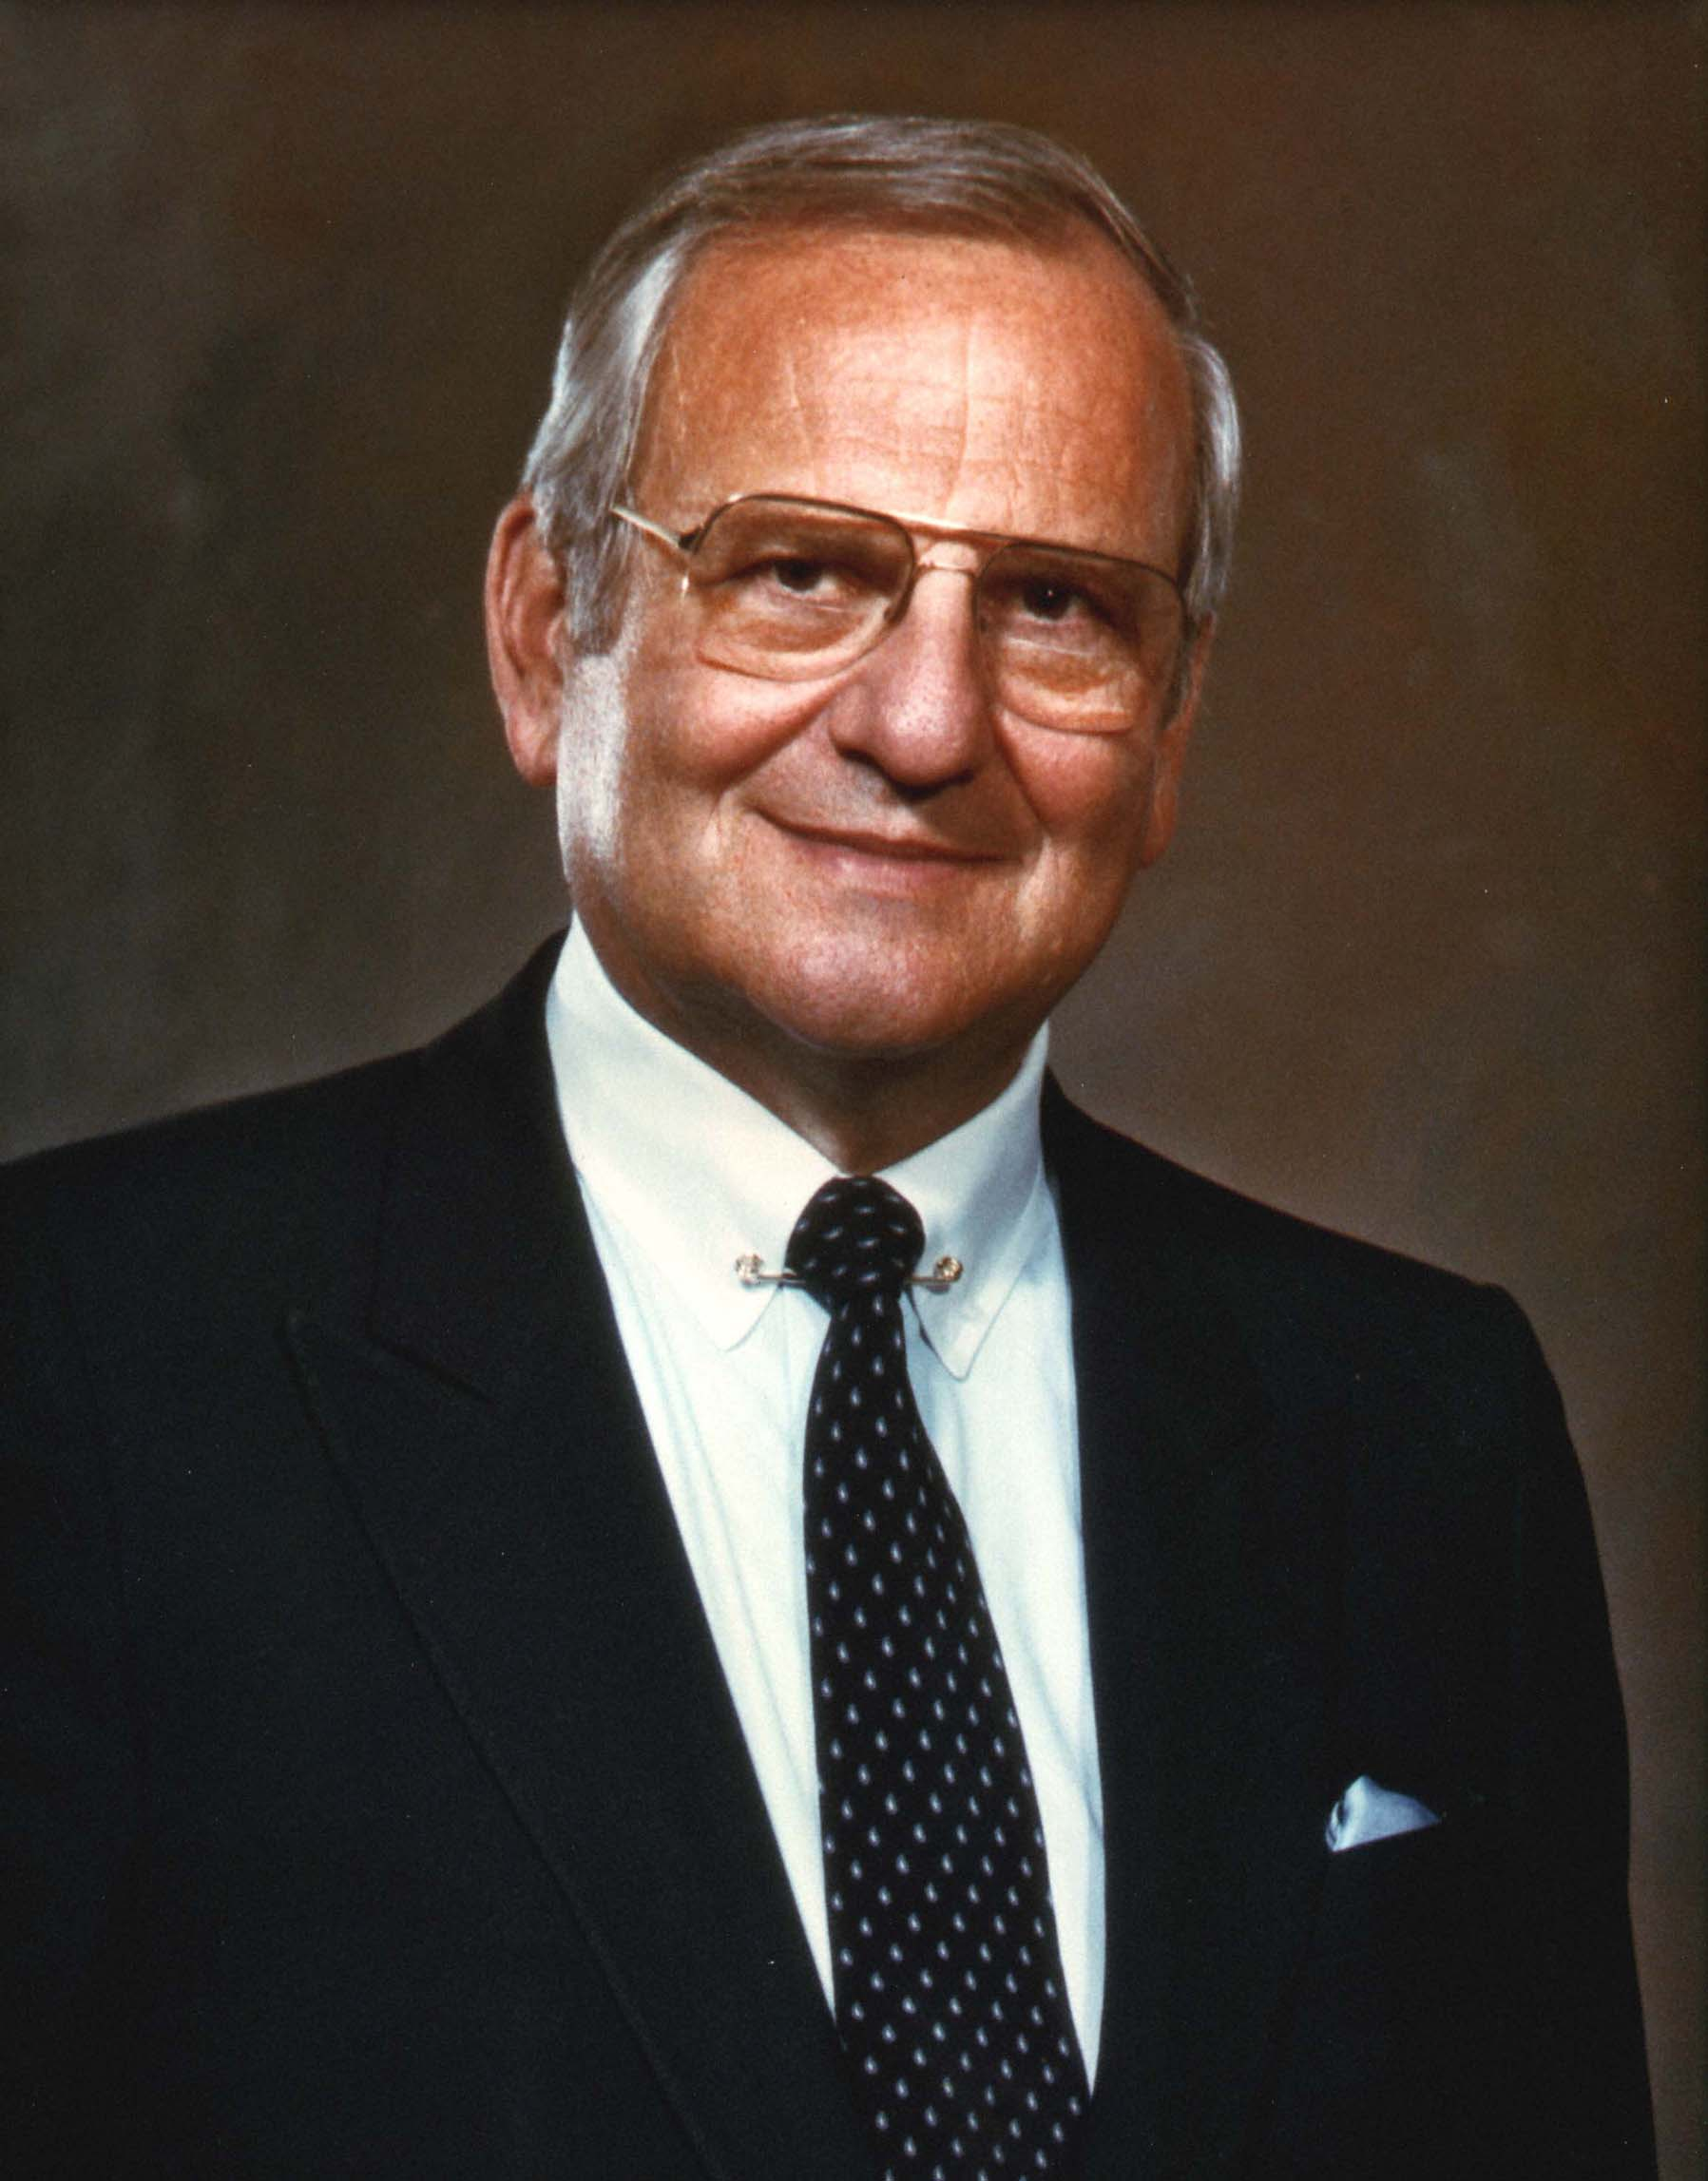 Lee Iacocca in 1978